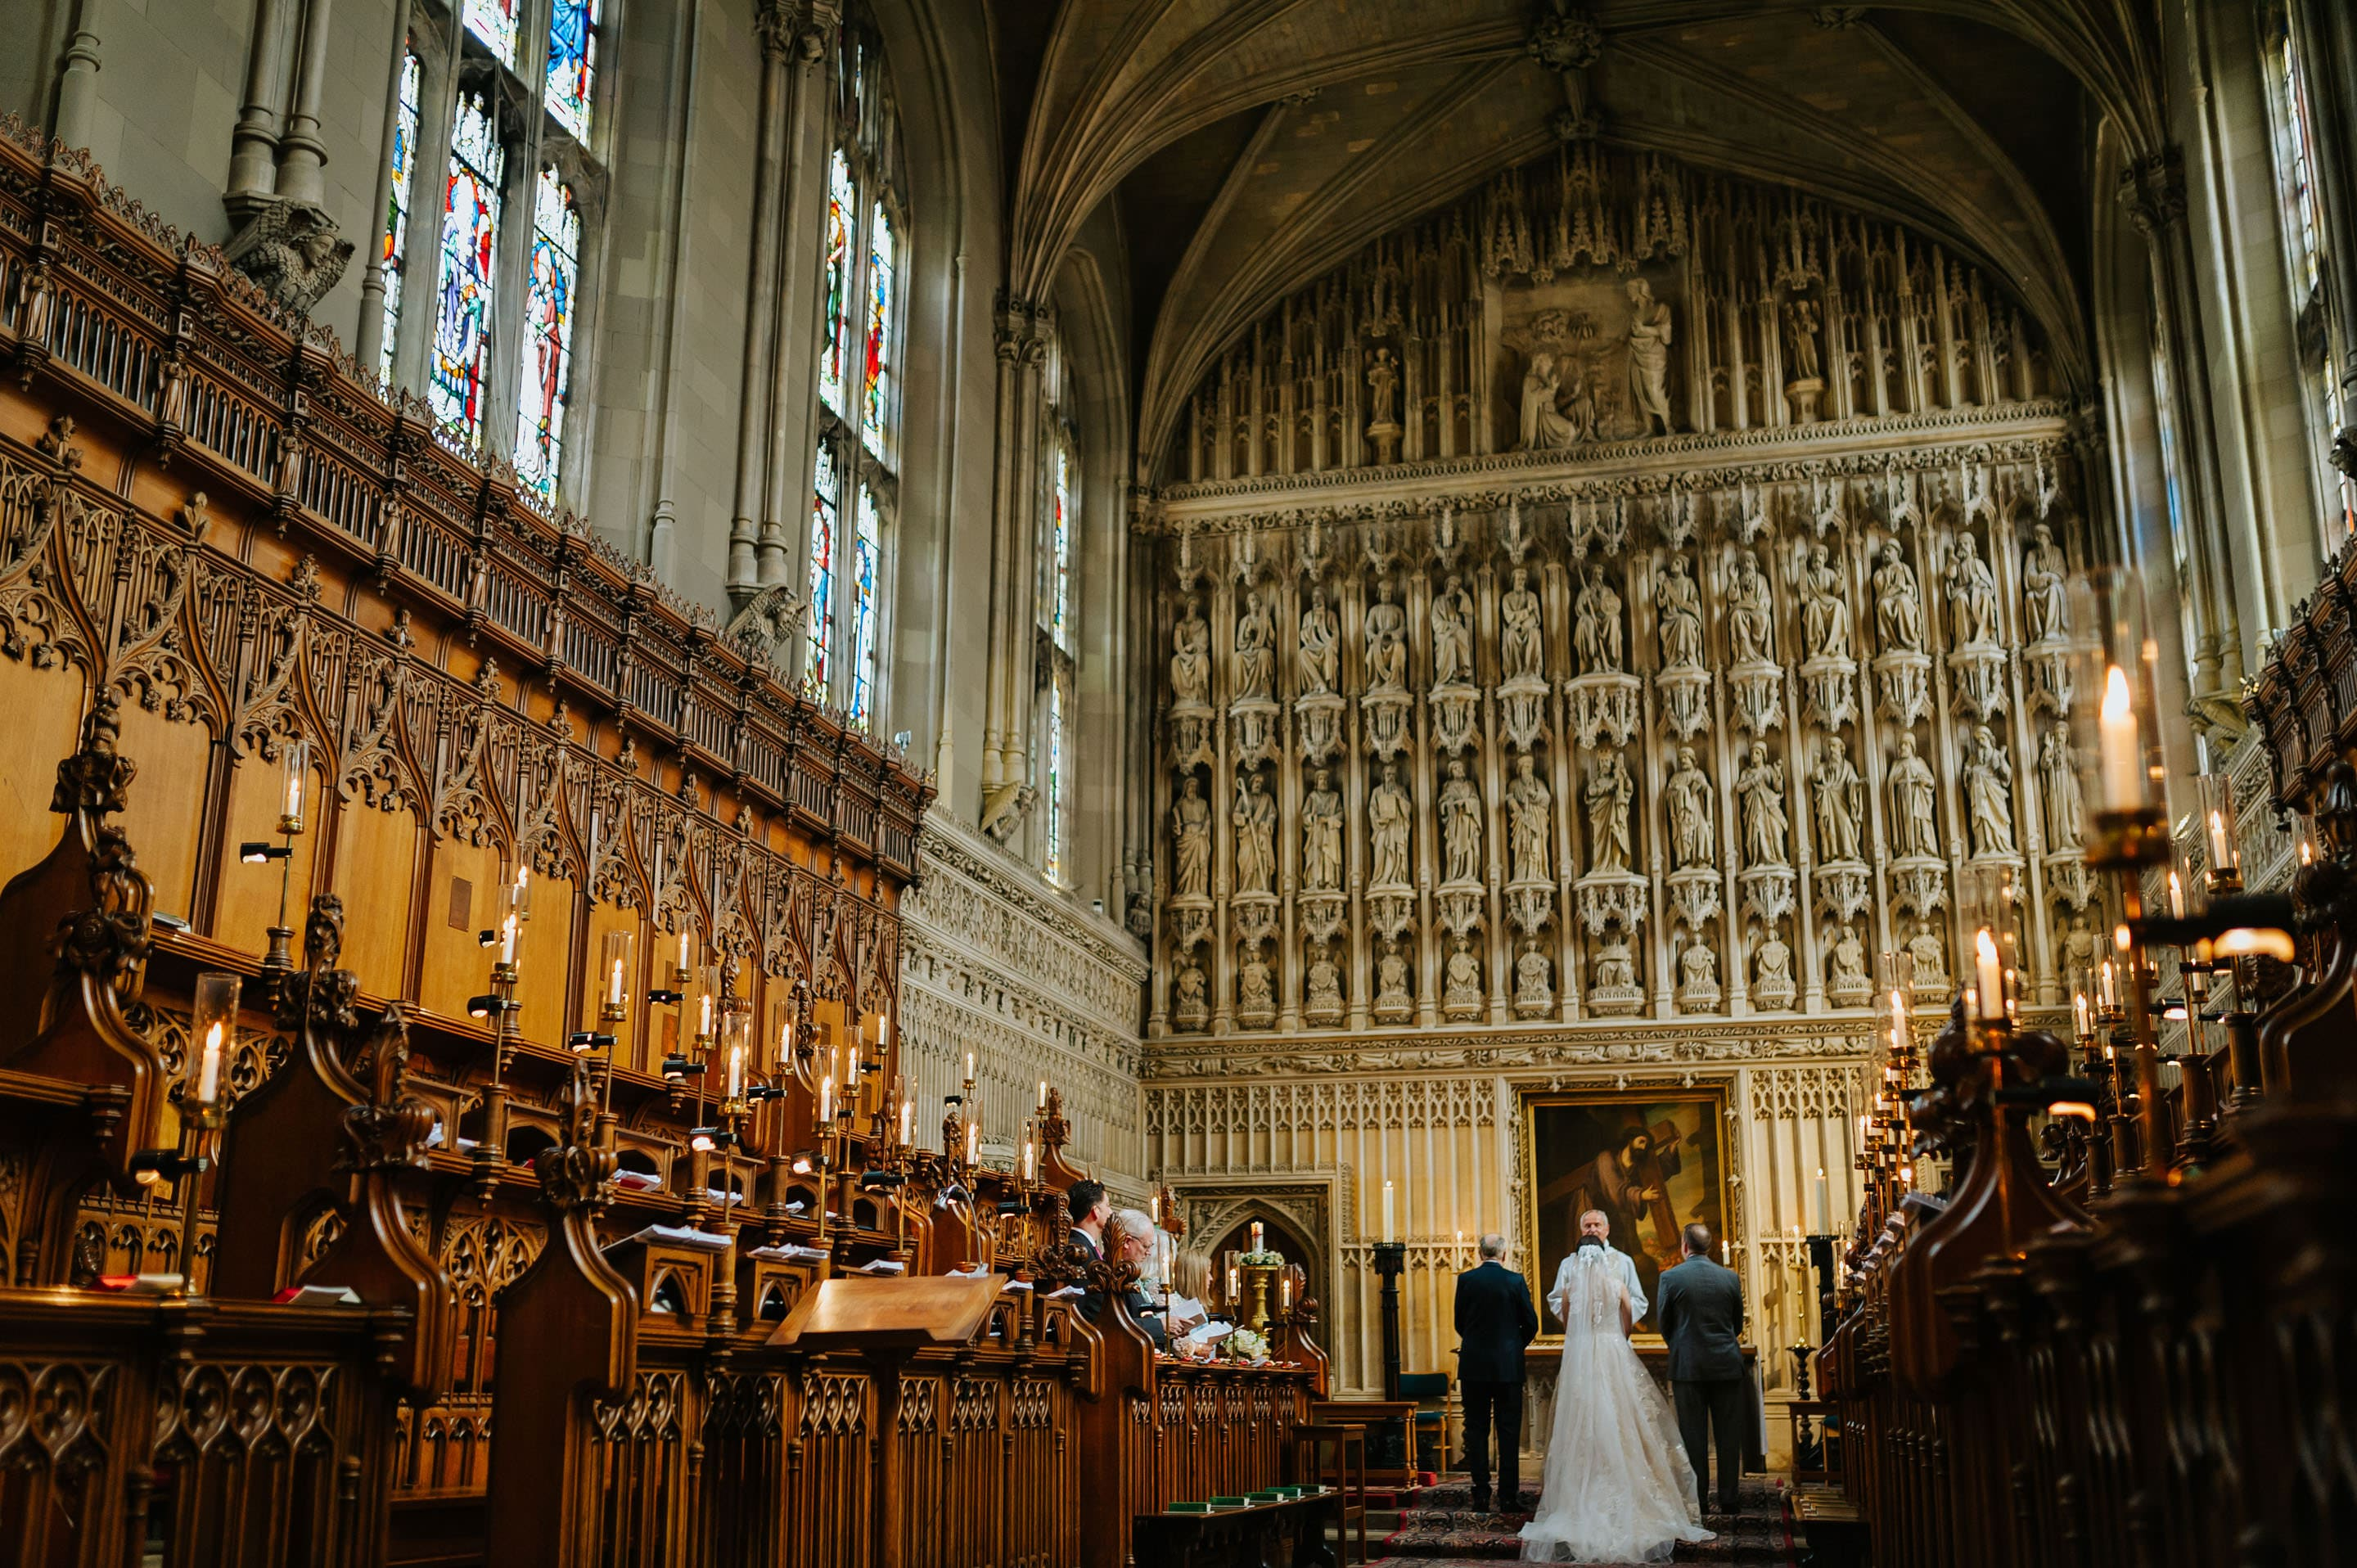 wedding at magdalen college in oxford 24 - Tommie + Virginia | Wedding at Magdalen College in Oxford